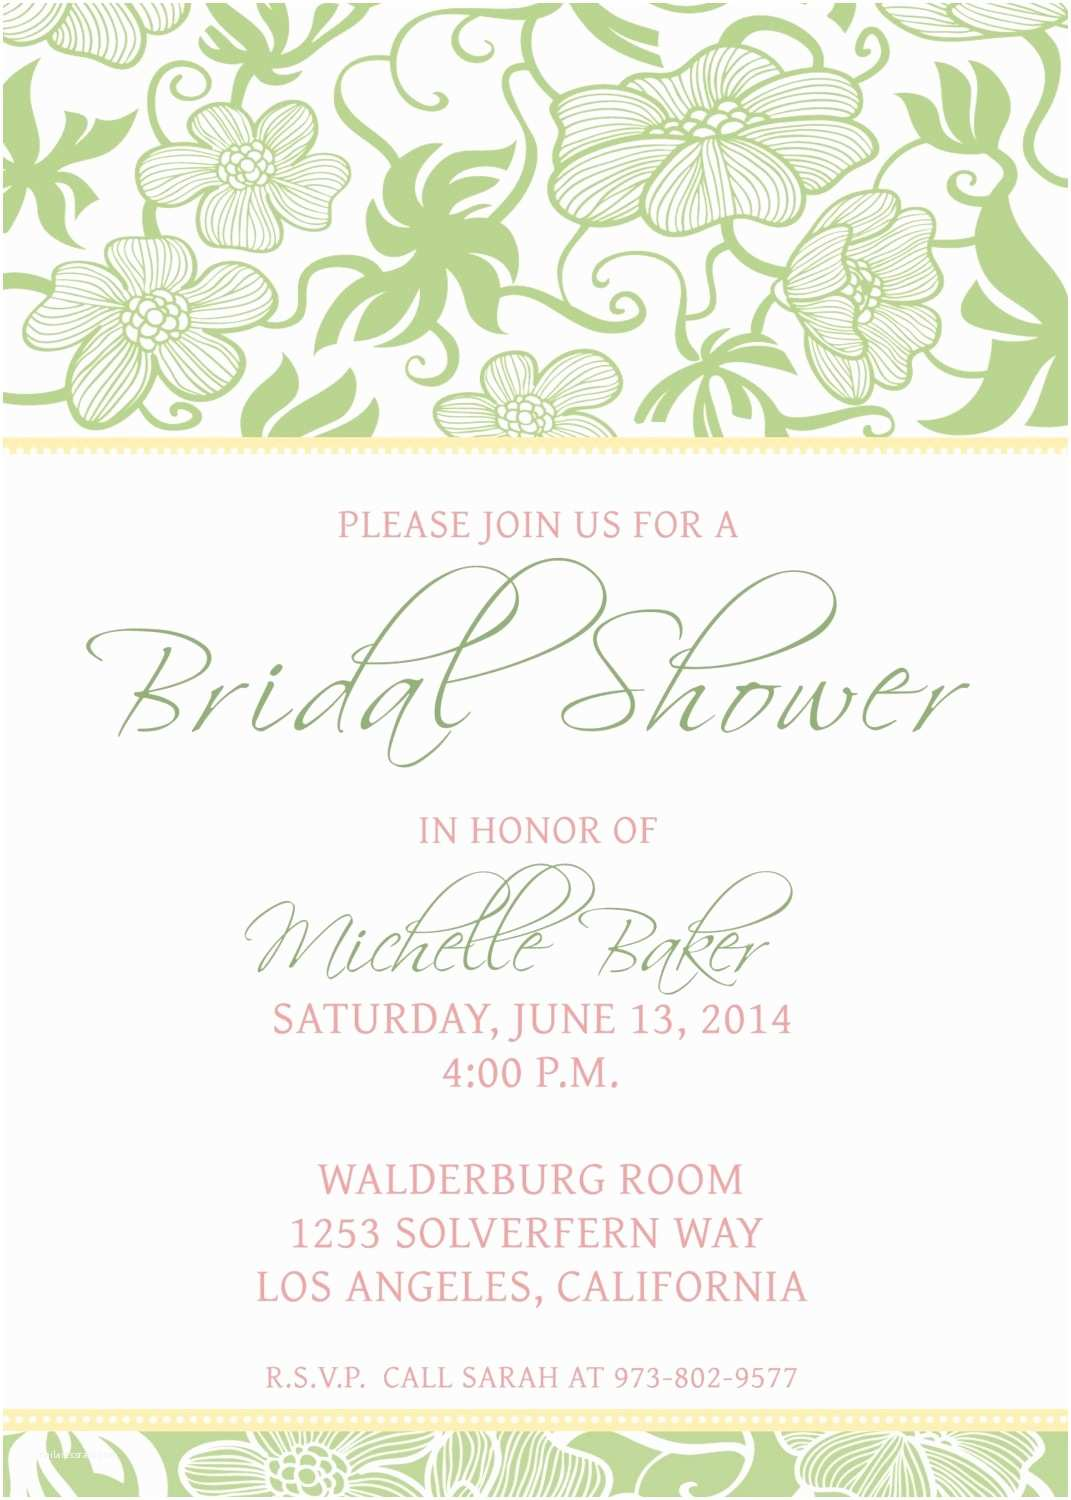 Make Your Wedding Invitations How to Make Your Own Wedding Invitations Template